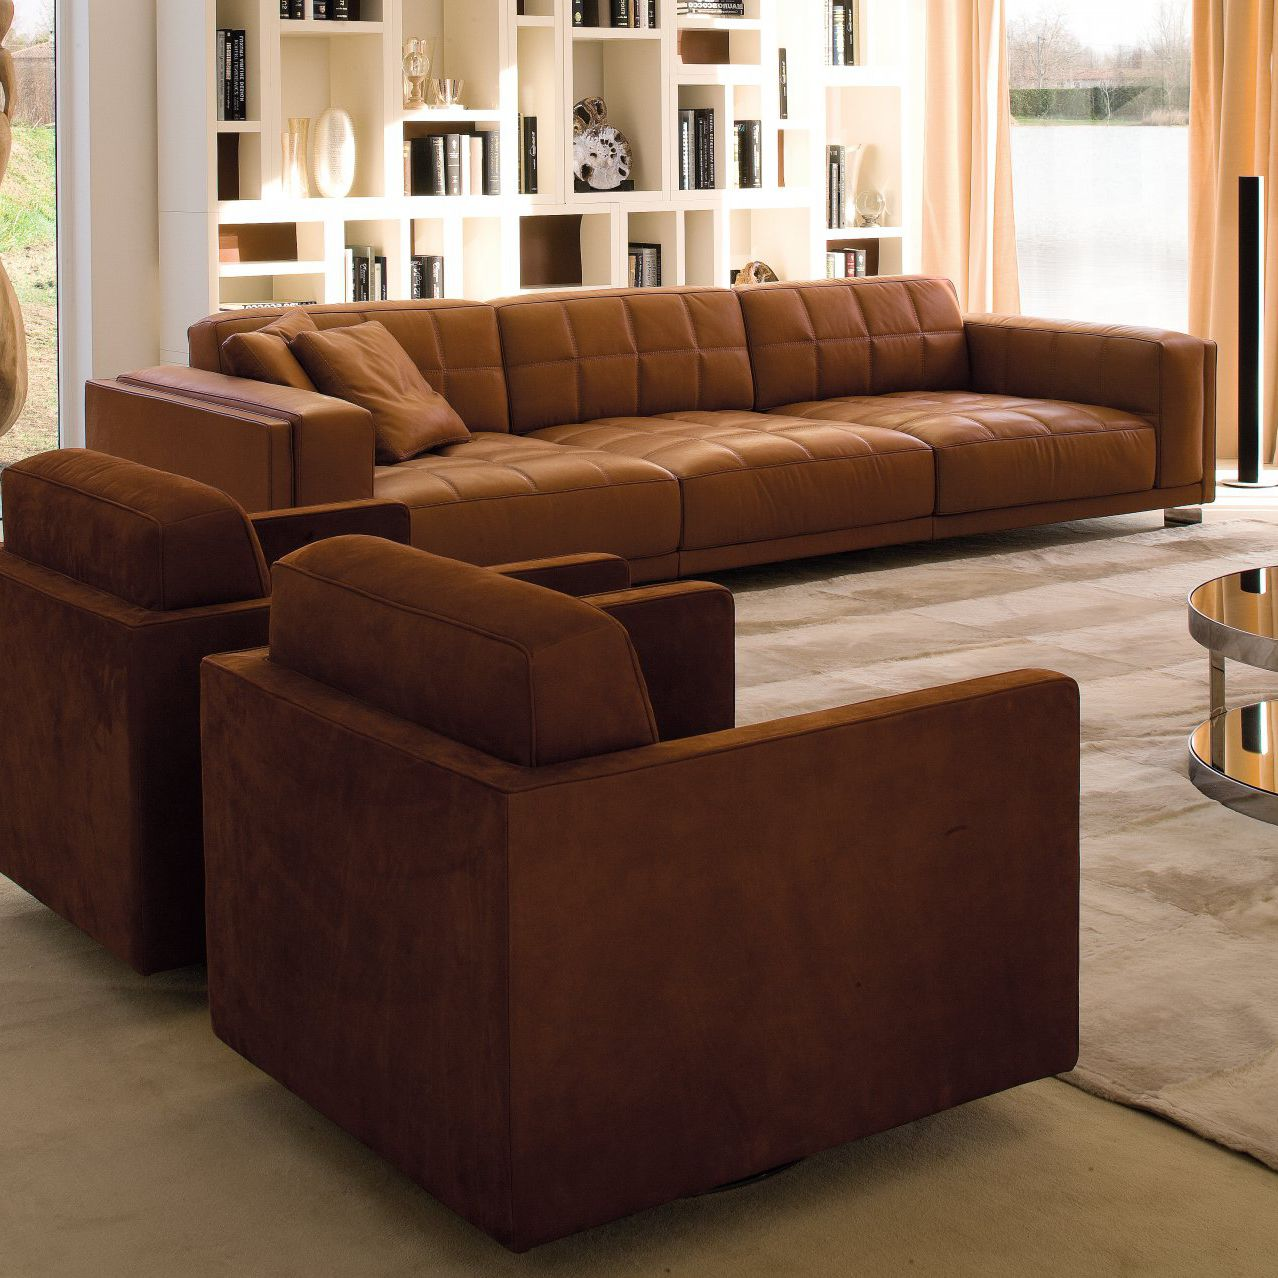 Contemporary sofa / leather / 4-seater / black - PALACE ...